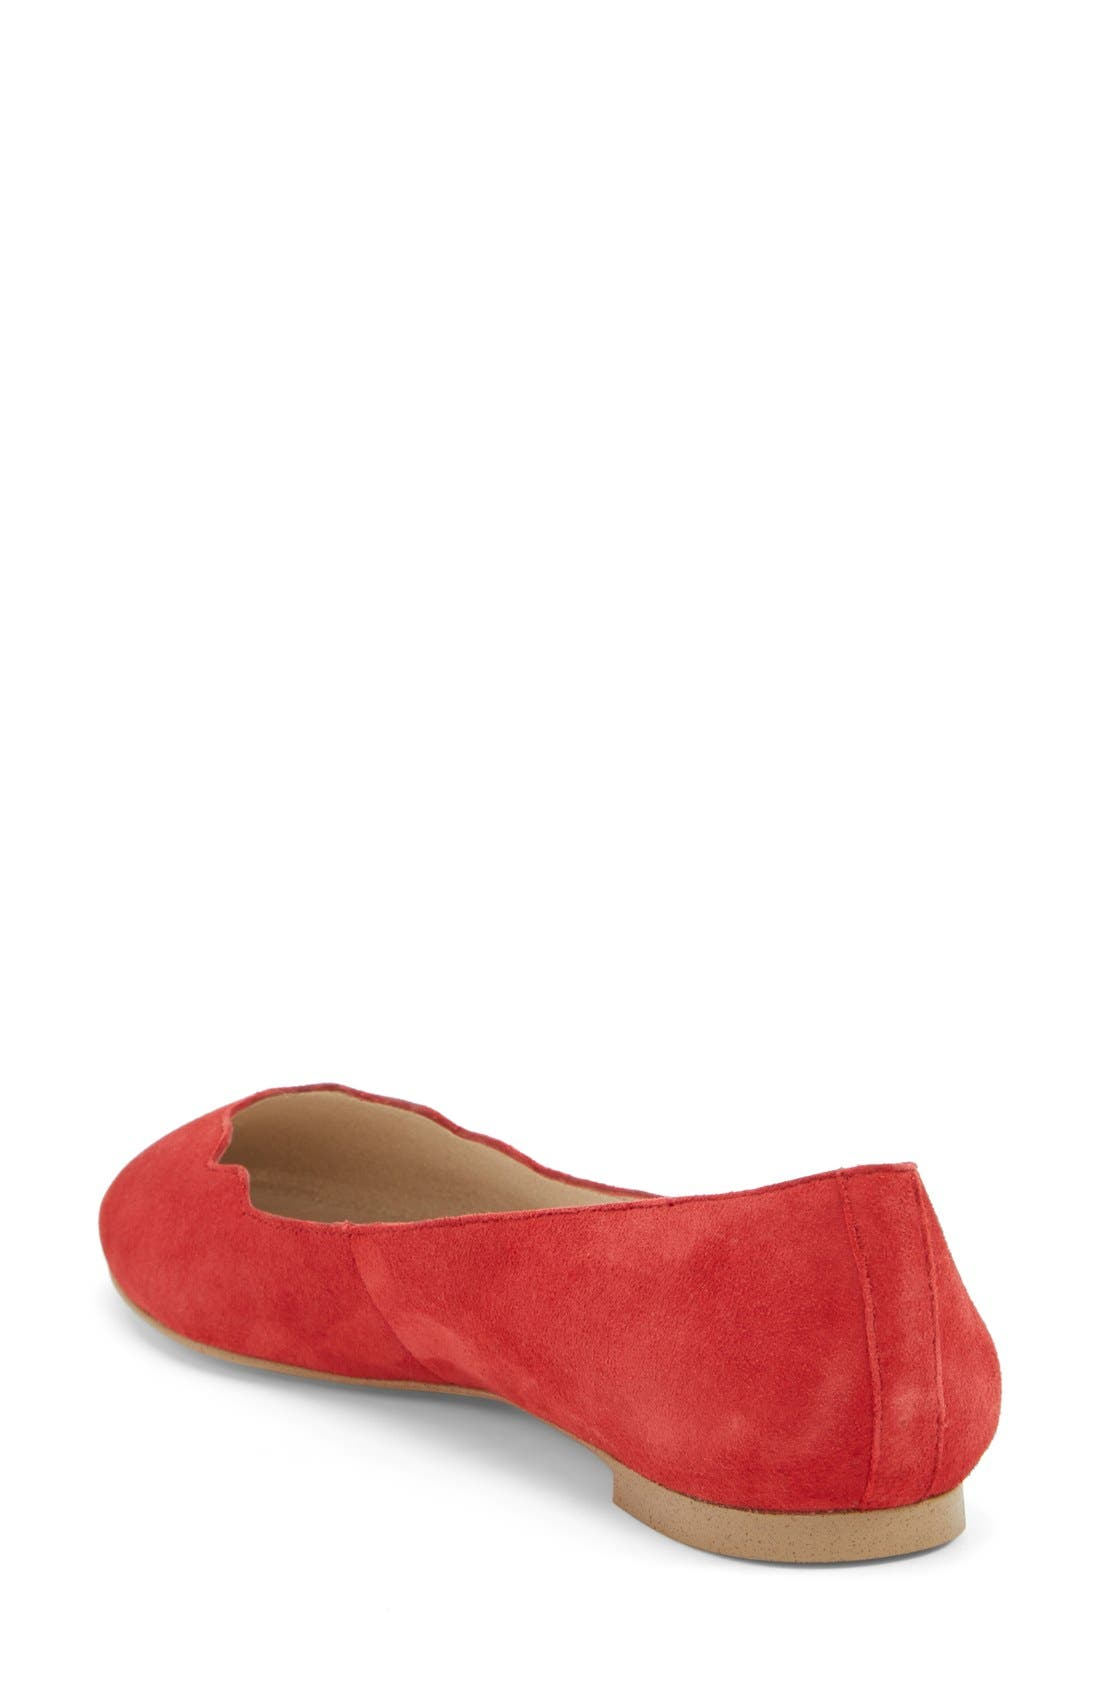 Alternate Image 2  - Sam Edelman 'Alaine' Scalloped Topline Flat (Women)